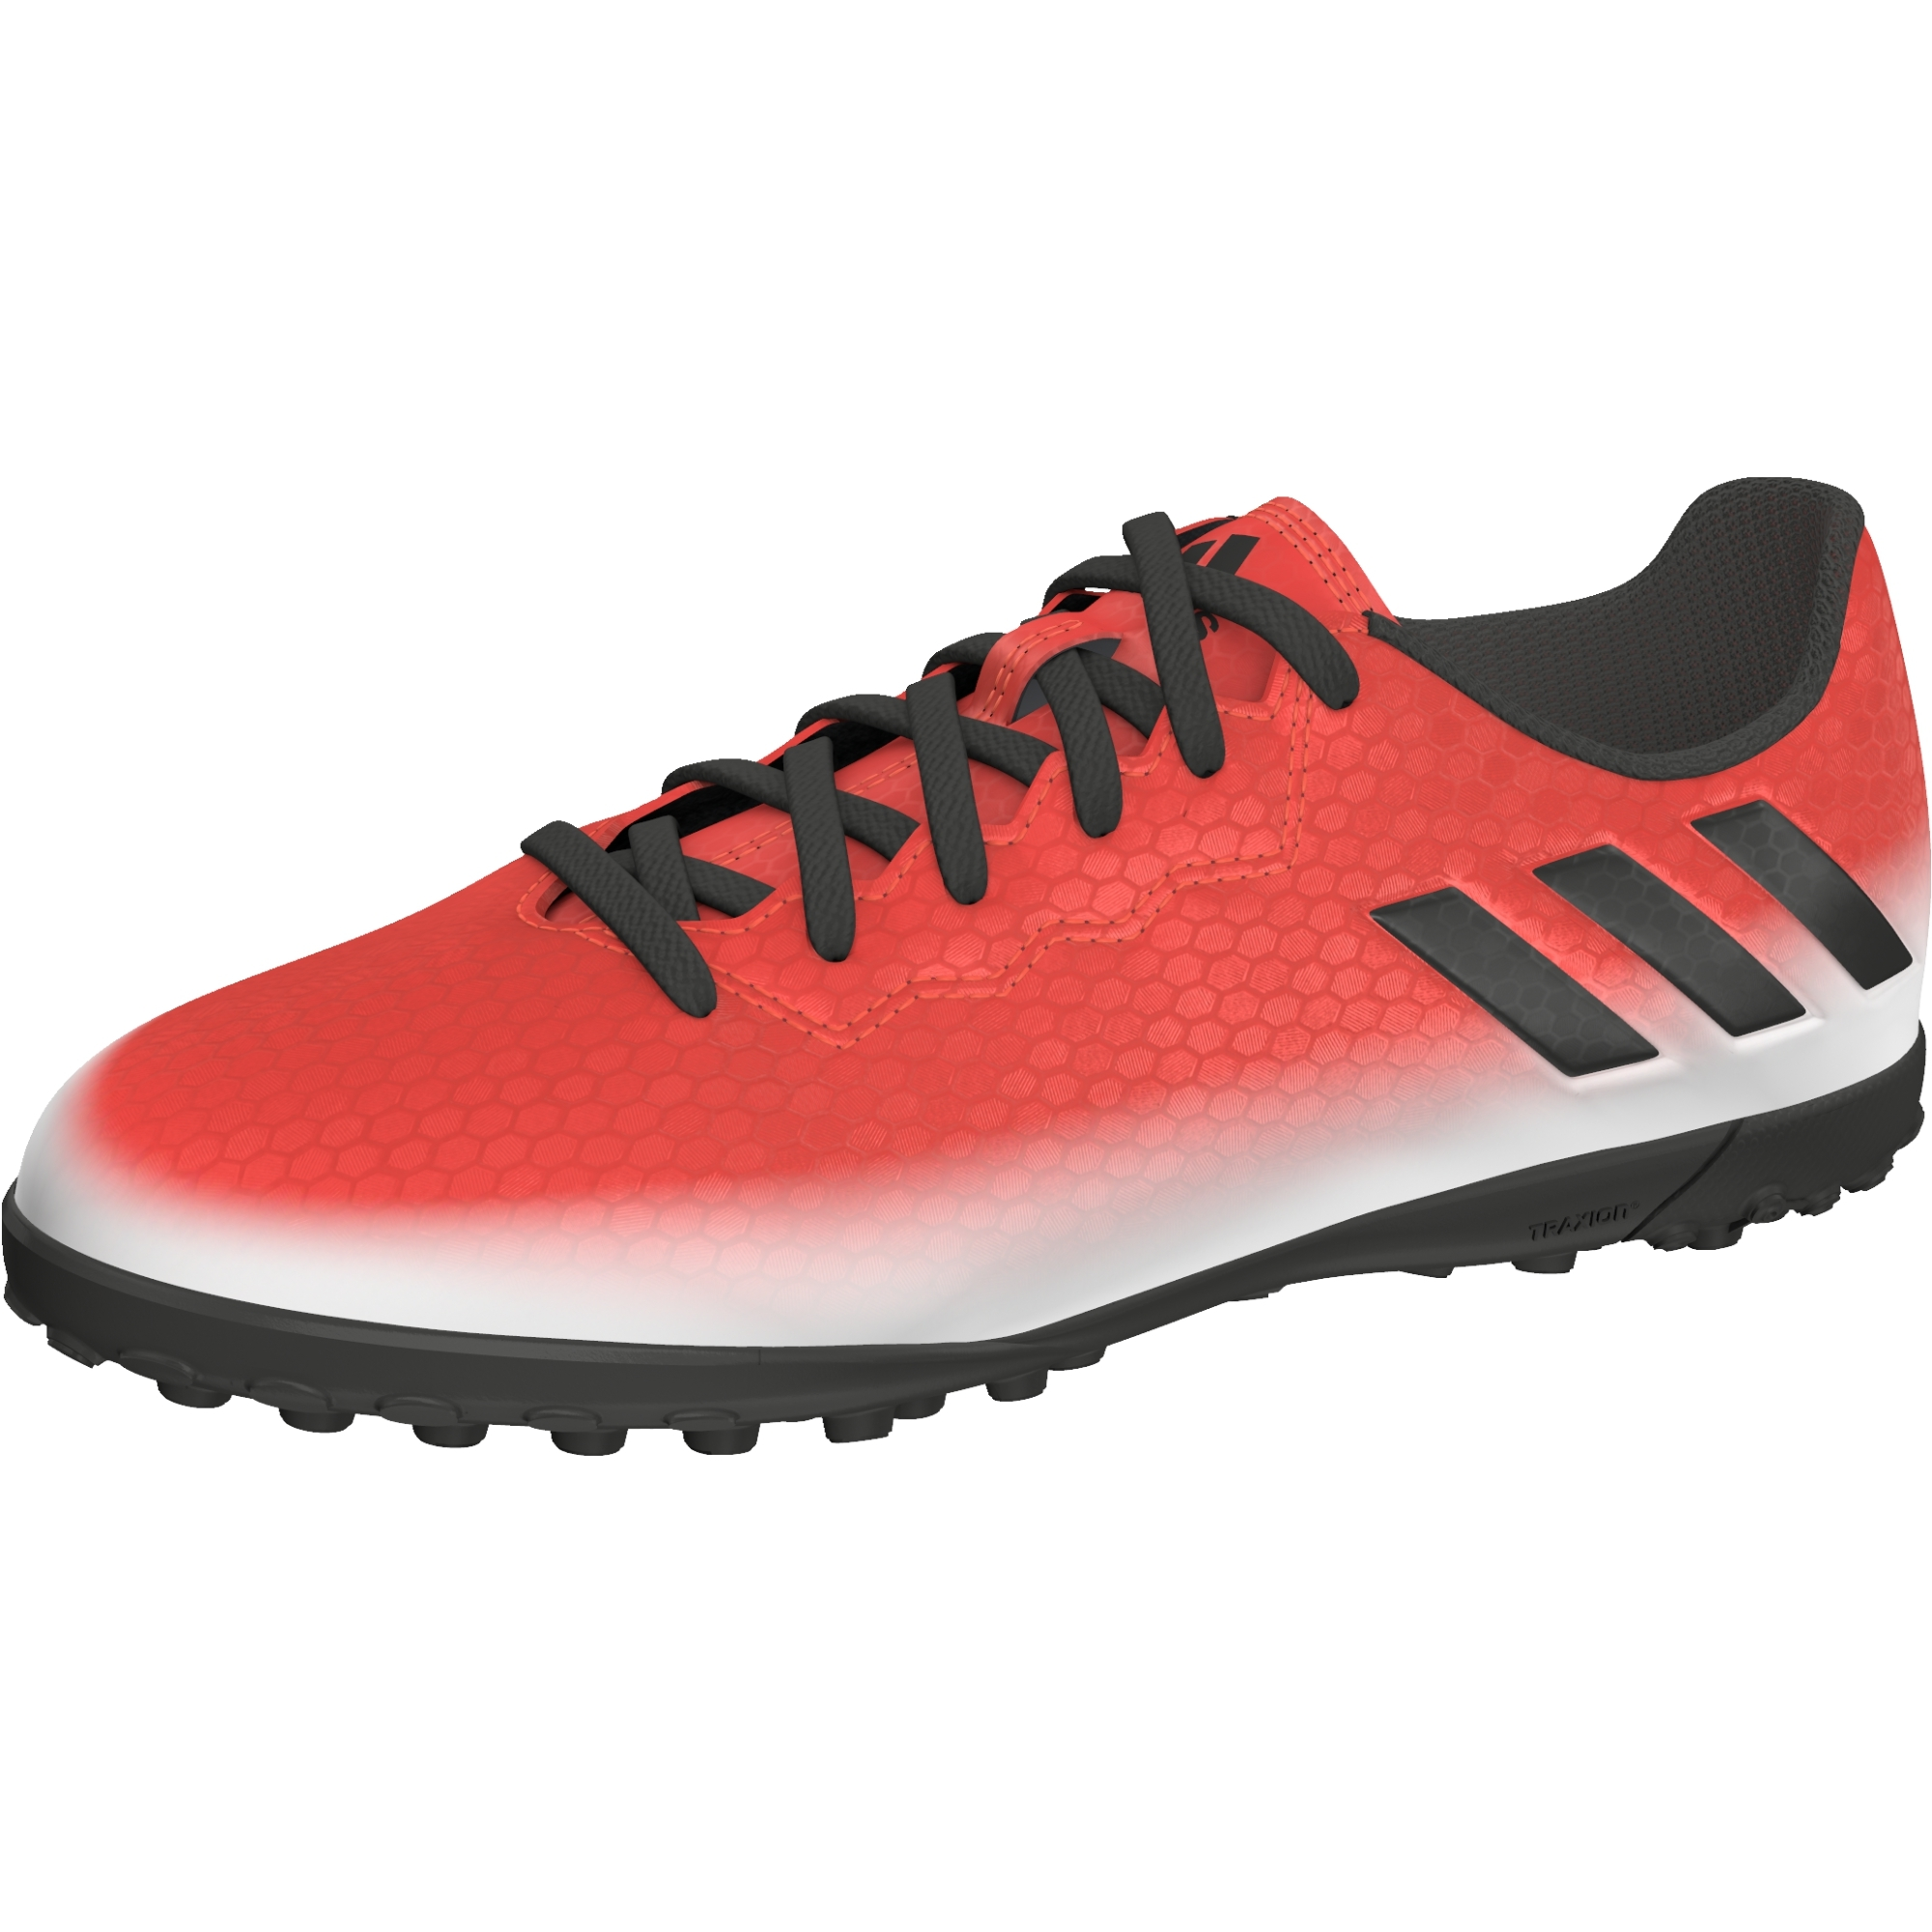 Adidas MESSI 16.4 TF - BB5654